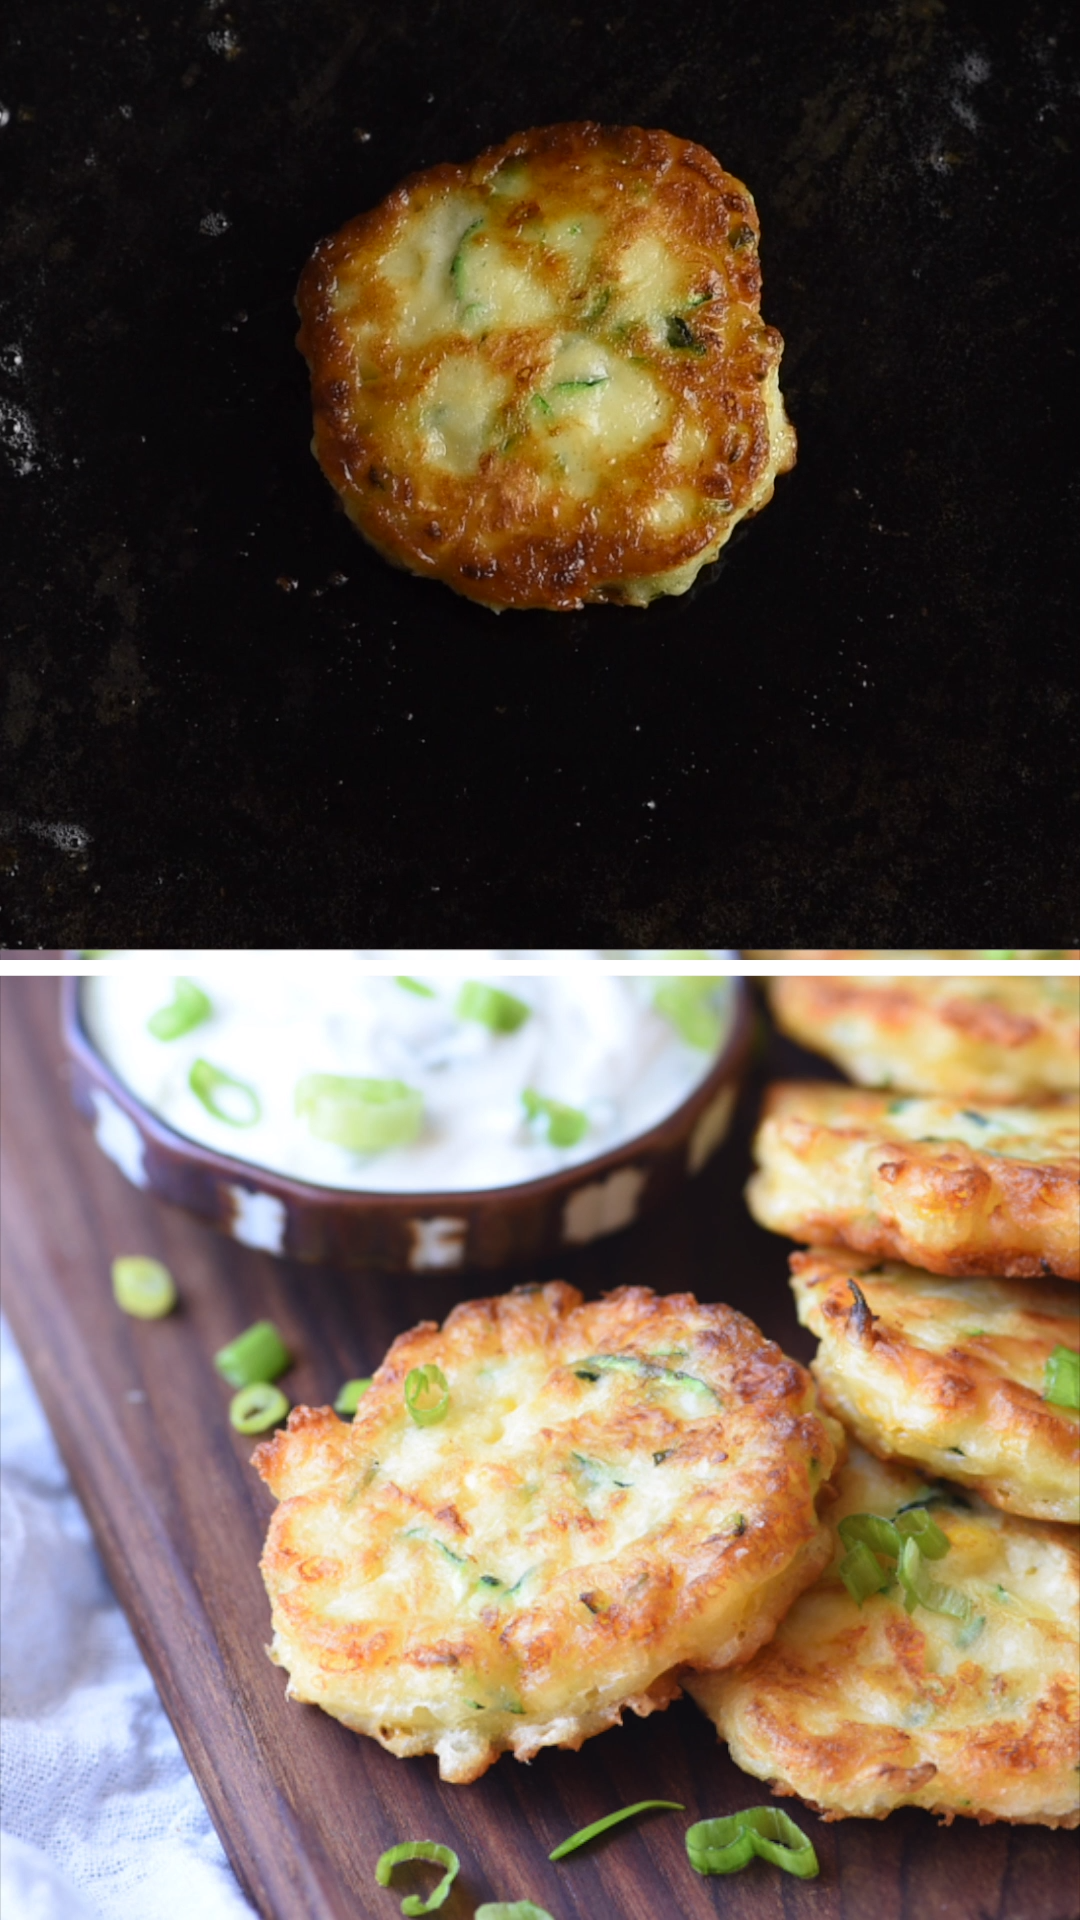 Zucchini Corn Fritters is part of Zucchini - Zucchini Corn Fritters are the perfect combination of two summer favorites, with a crispy exterior and soft inside  Served with a sour cream lime dipping sauce!